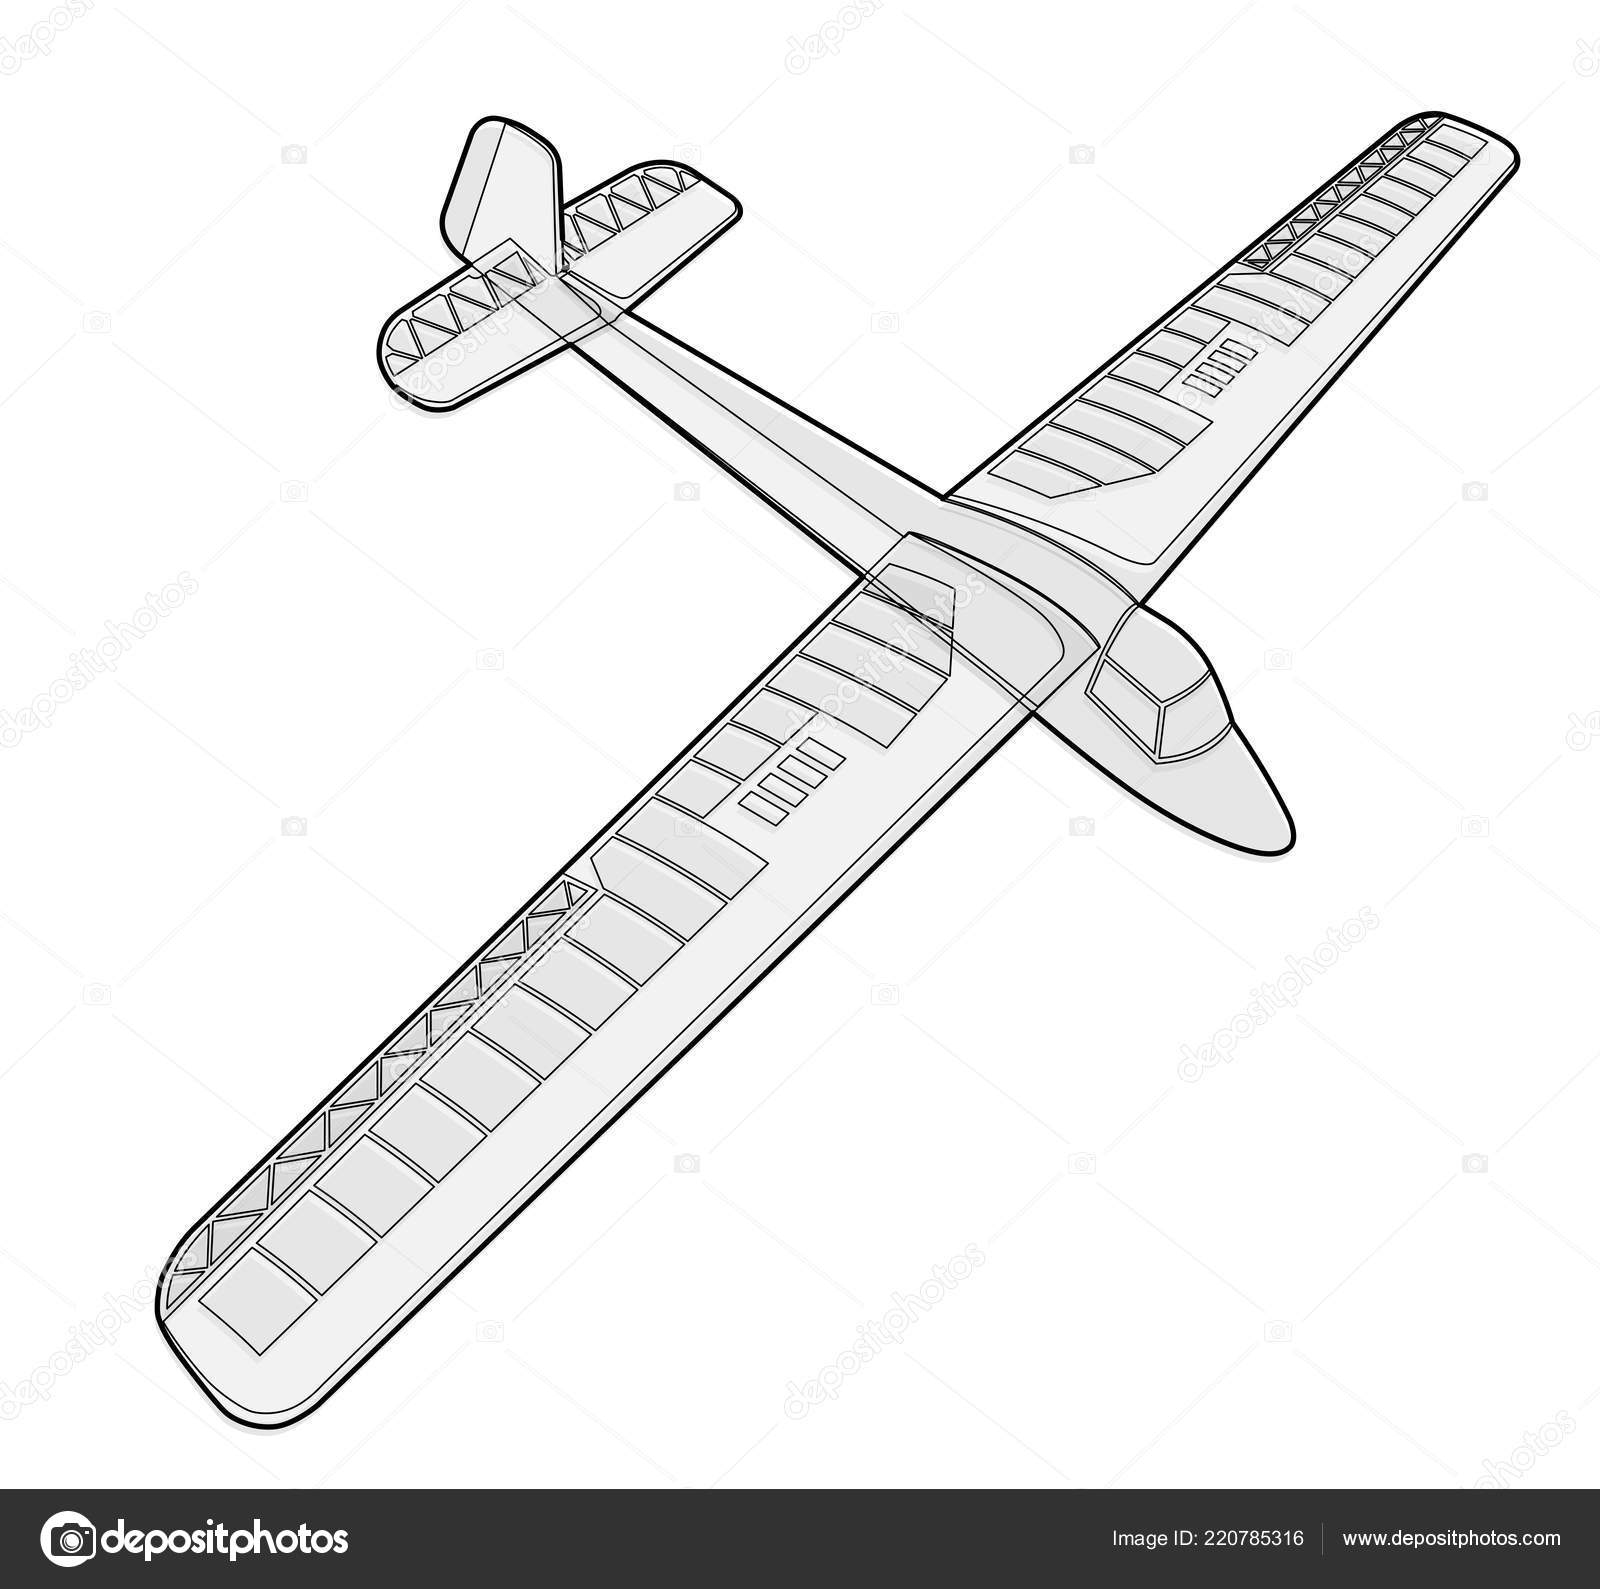 Model Glider Ground Plan Beautiful Subtle Airplane Balsa Wood Wings